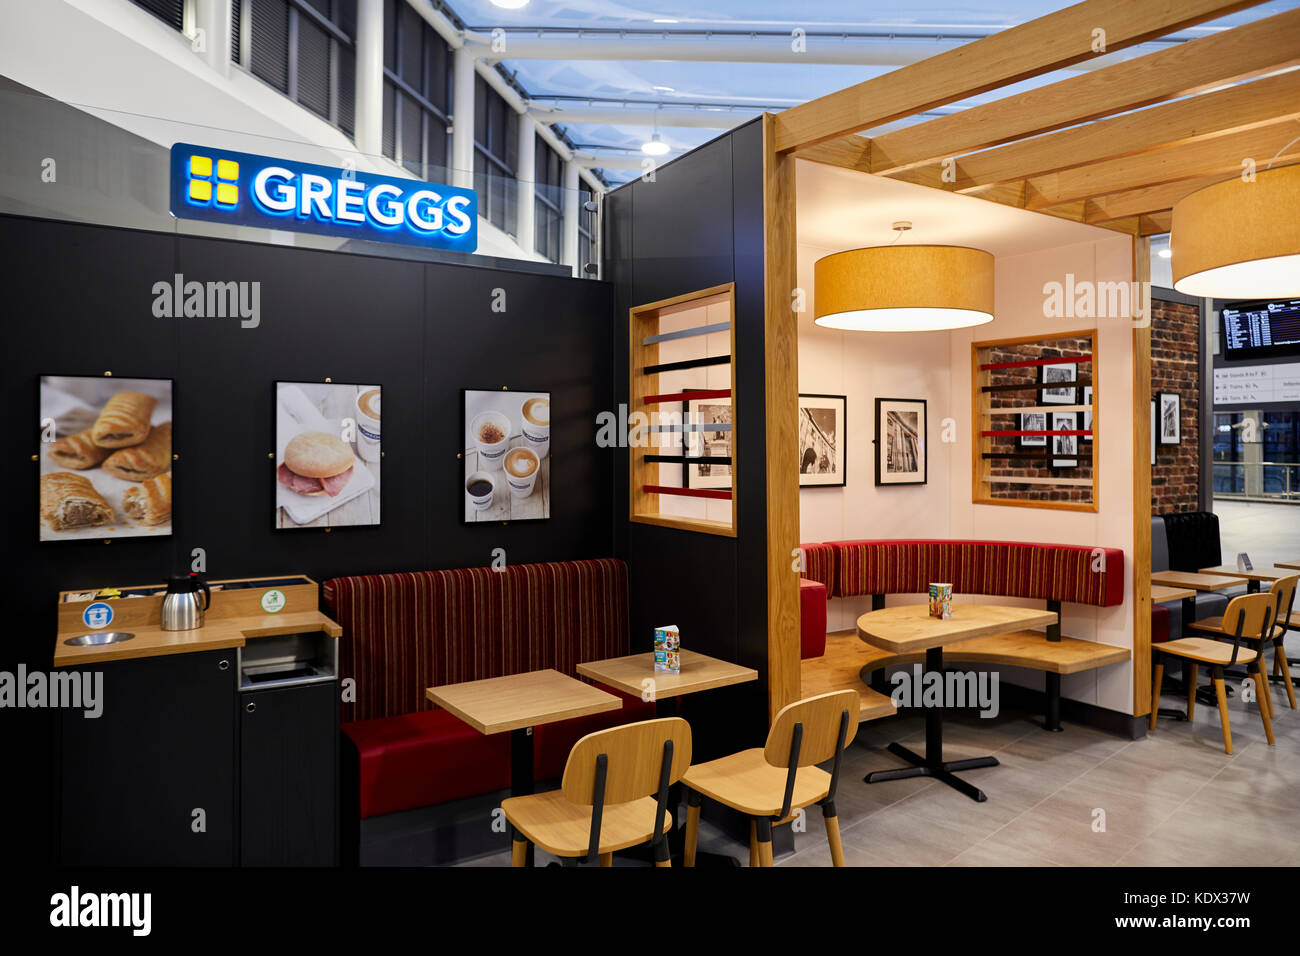 Bolton Interchance opens with a new Greggs shop inside JRW Group rebrand to Ripe. - Stock Image